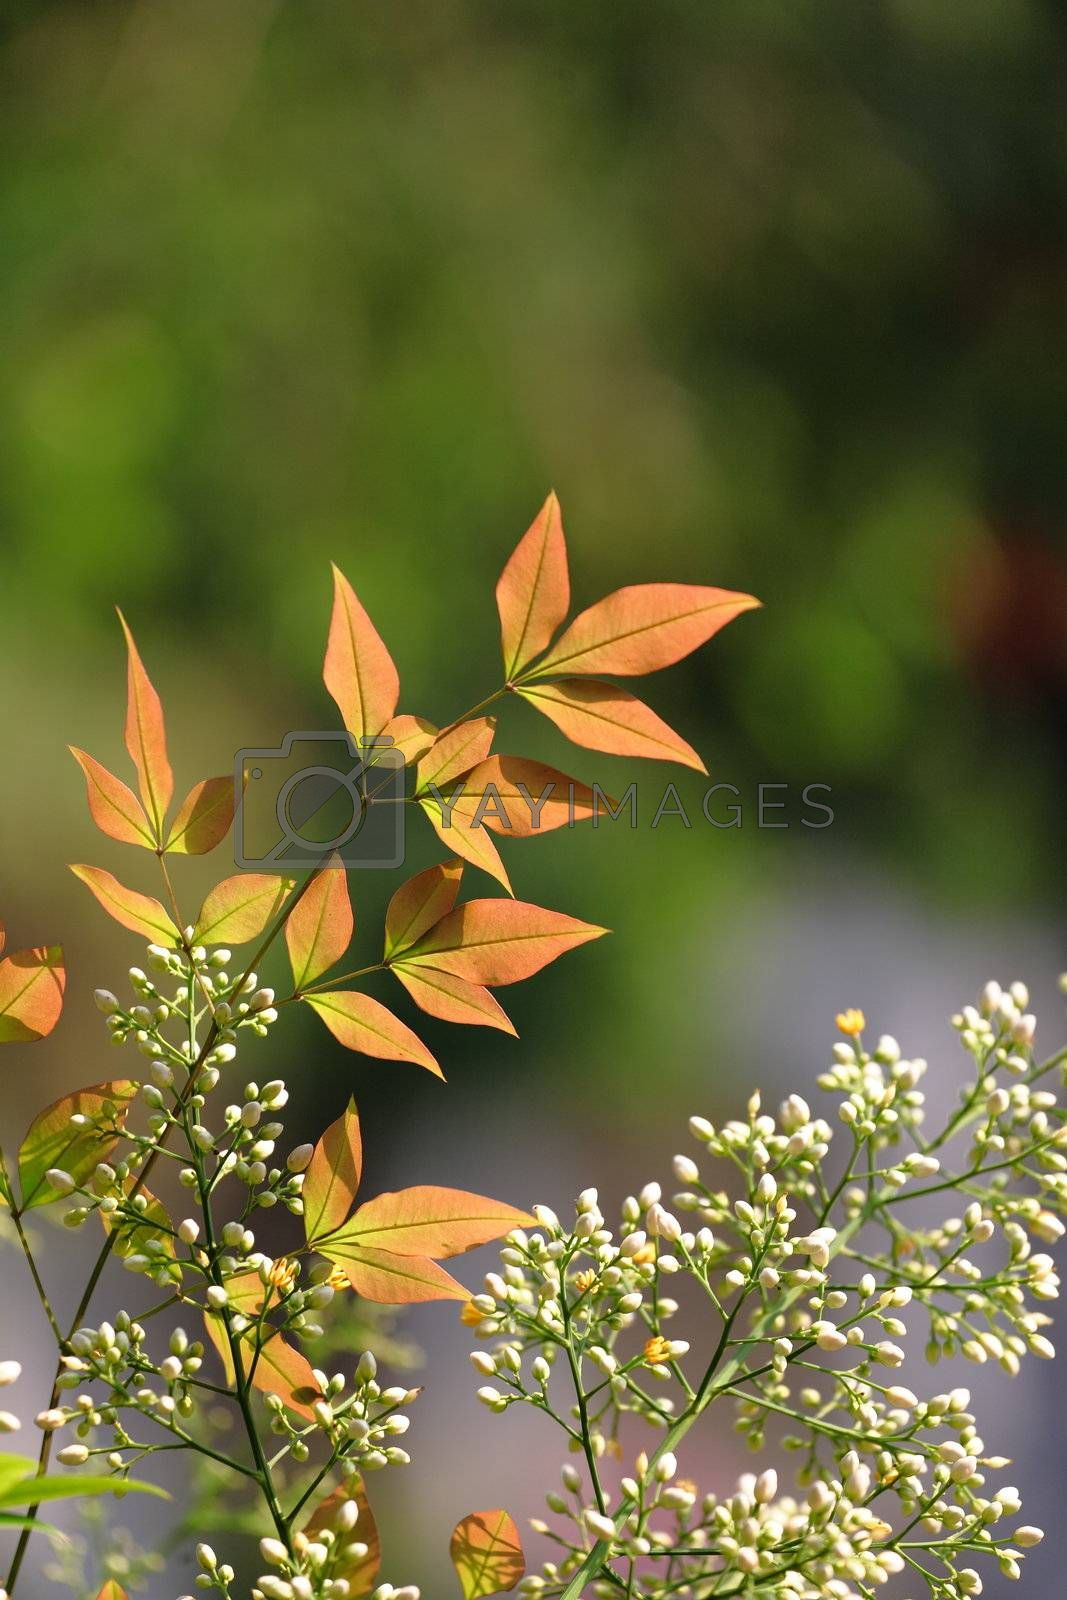 Royalty free image of orange color leaf in forest by leungchopan